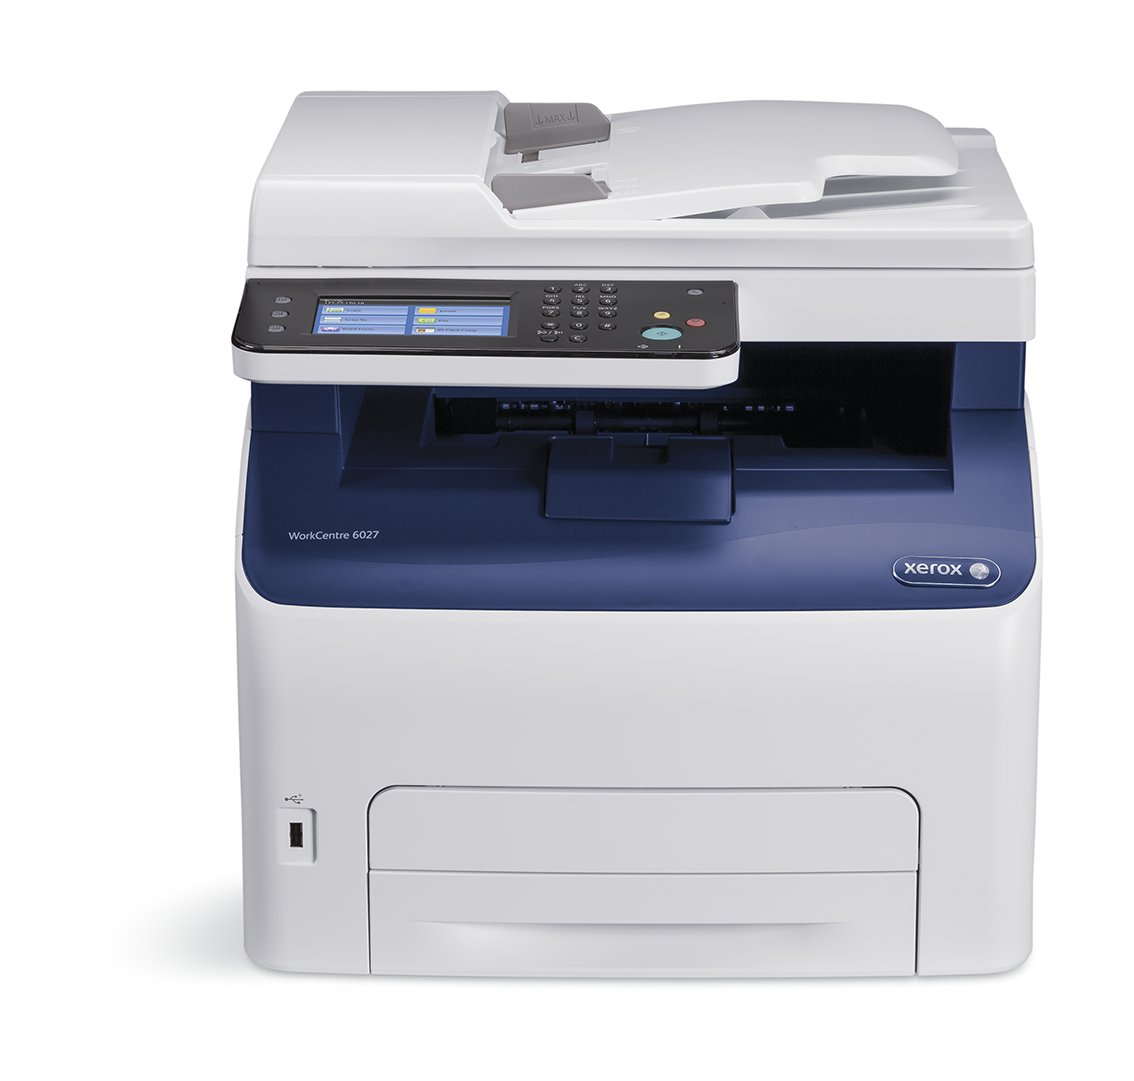 Amazon.com: Xerox WorkCentre 6027/NI Wireless Color Multifunction Printer:  Office Products